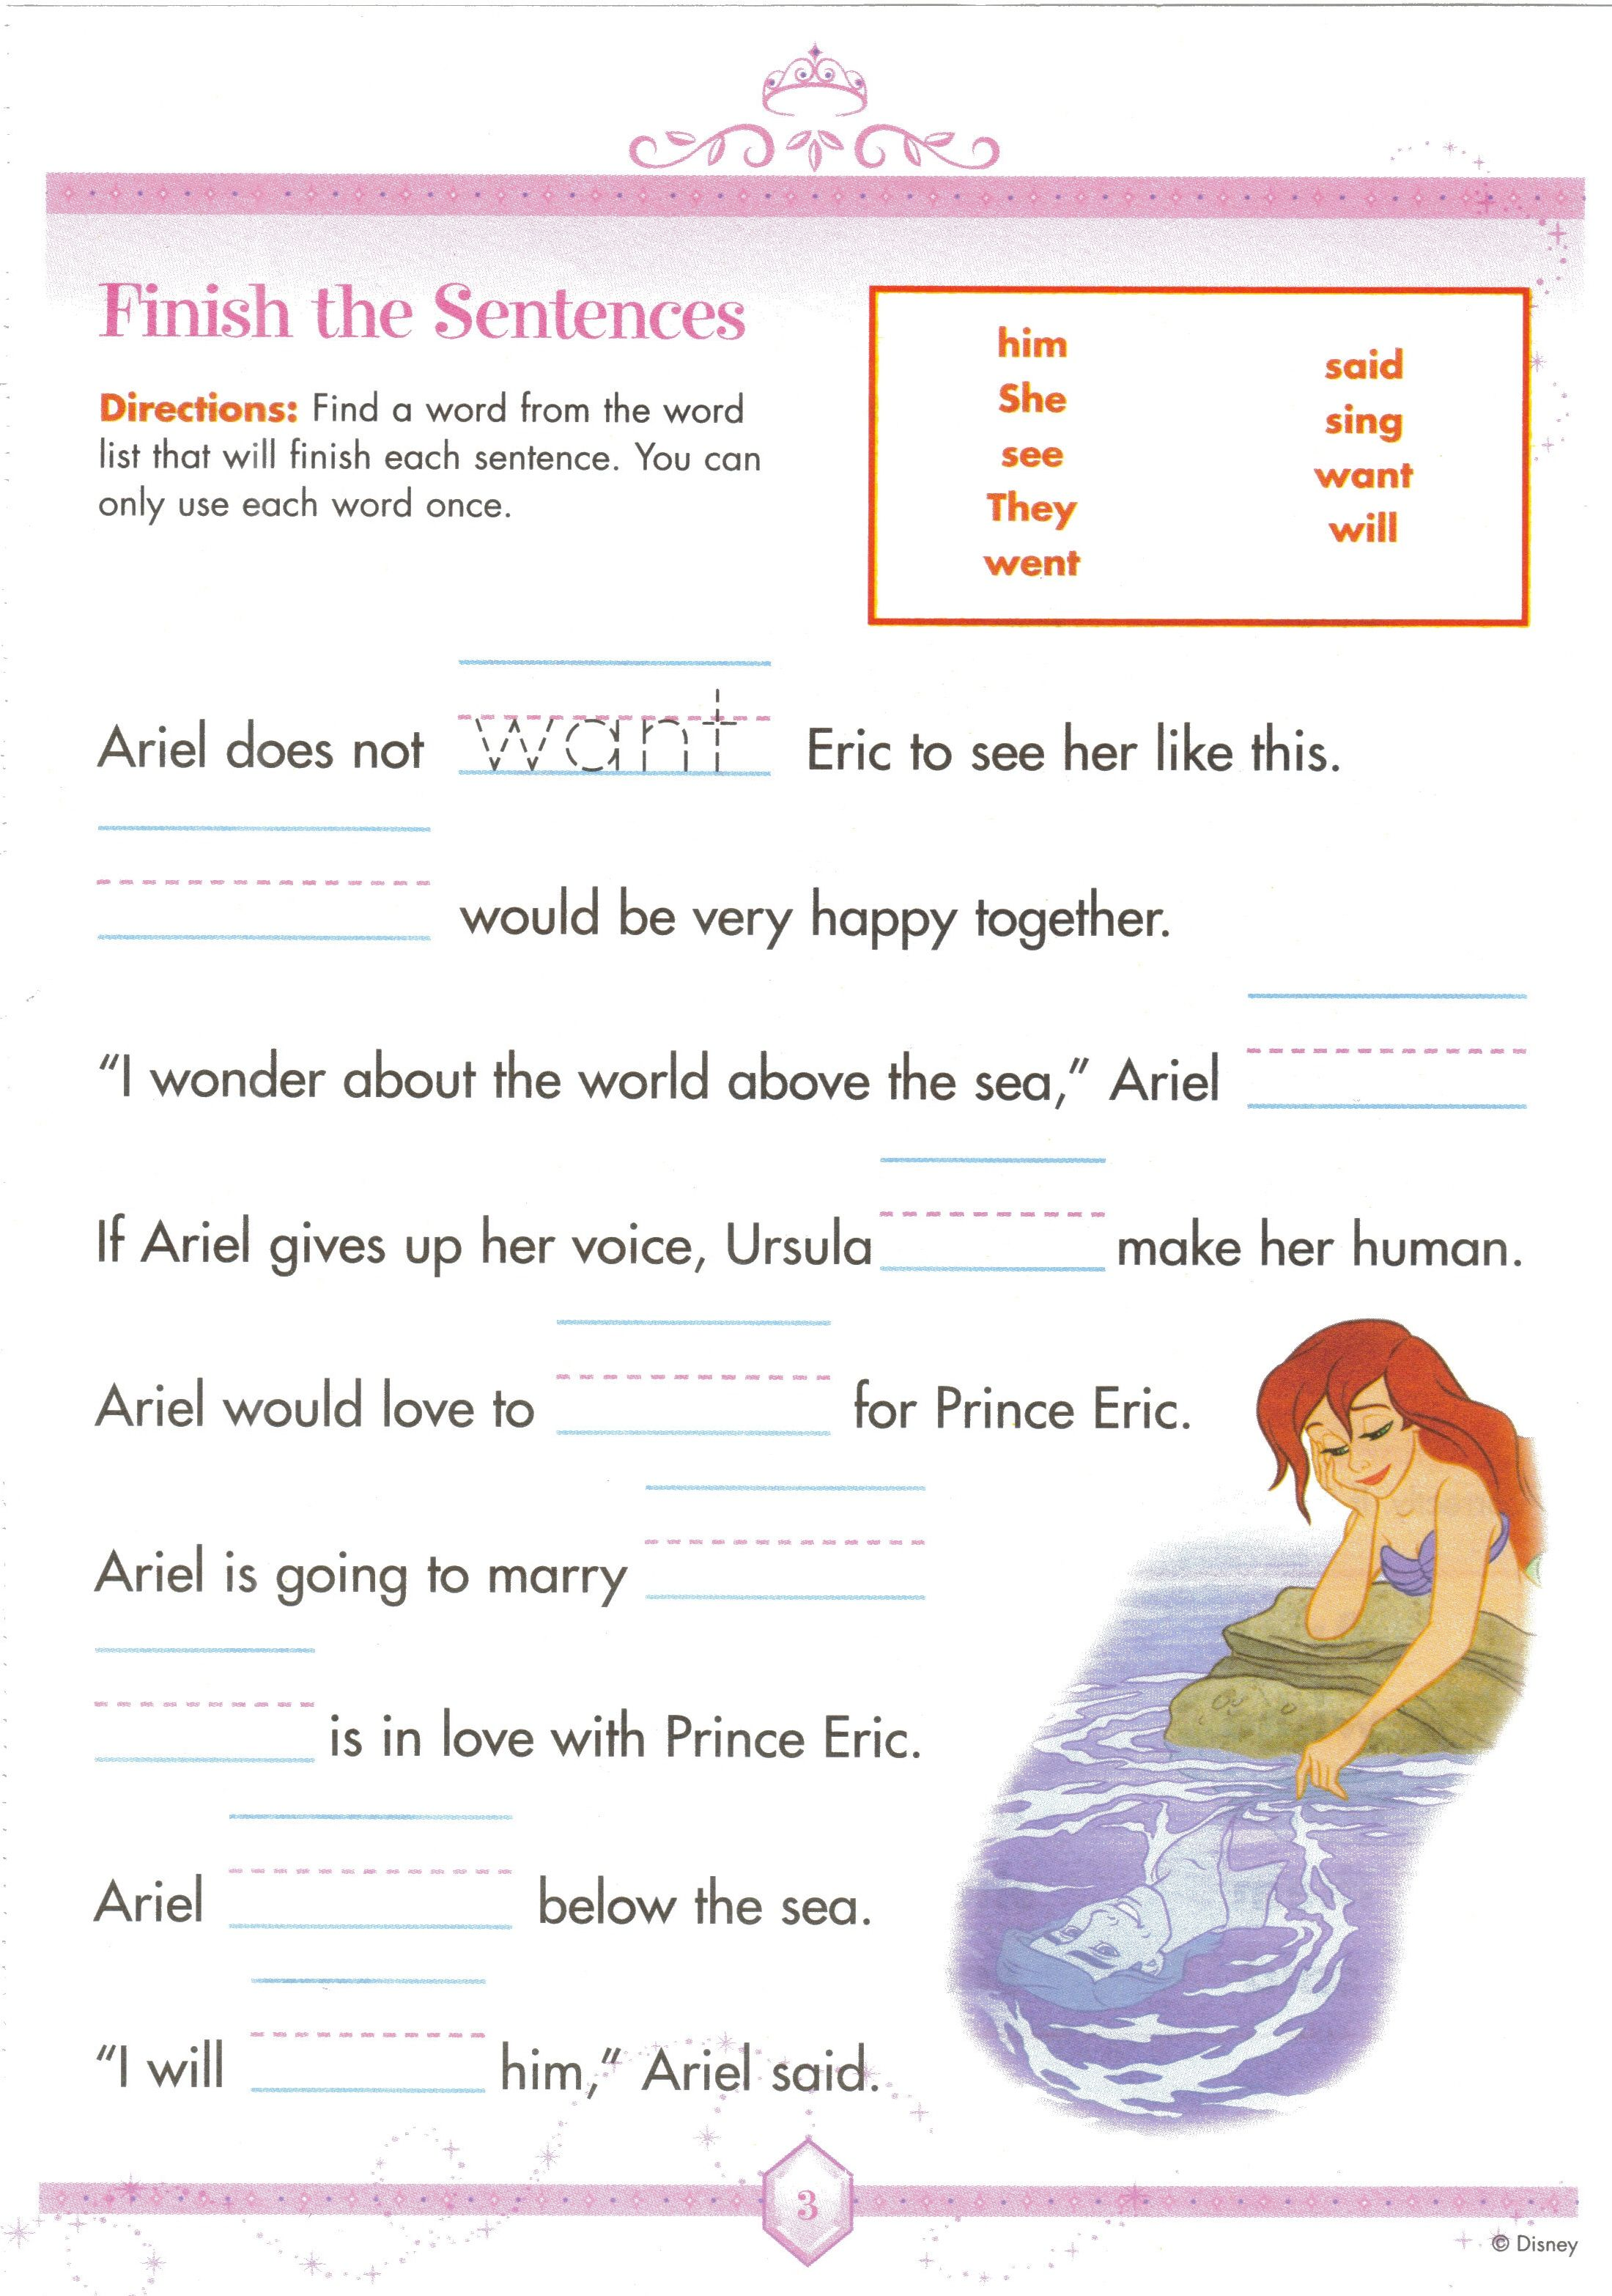 Weirdmailus  Wonderful  Images About Worksheets On Pinterest  Fun Facts For Kids  With Magnificent  Images About Worksheets On Pinterest  Fun Facts For Kids Earth Day Worksheets And Jungles With Amusing Letter A Sound Worksheets Also Greater Than Less Than Equal To Worksheets For Kindergarten In Addition Rounding Worksheets Third Grade And Free Printable Simple Addition Worksheets As Well As Seasons Worksheets Kindergarten Additionally Algebra Worksheets For Th Grade From Pinterestcom With Weirdmailus  Magnificent  Images About Worksheets On Pinterest  Fun Facts For Kids  With Amusing  Images About Worksheets On Pinterest  Fun Facts For Kids Earth Day Worksheets And Jungles And Wonderful Letter A Sound Worksheets Also Greater Than Less Than Equal To Worksheets For Kindergarten In Addition Rounding Worksheets Third Grade From Pinterestcom